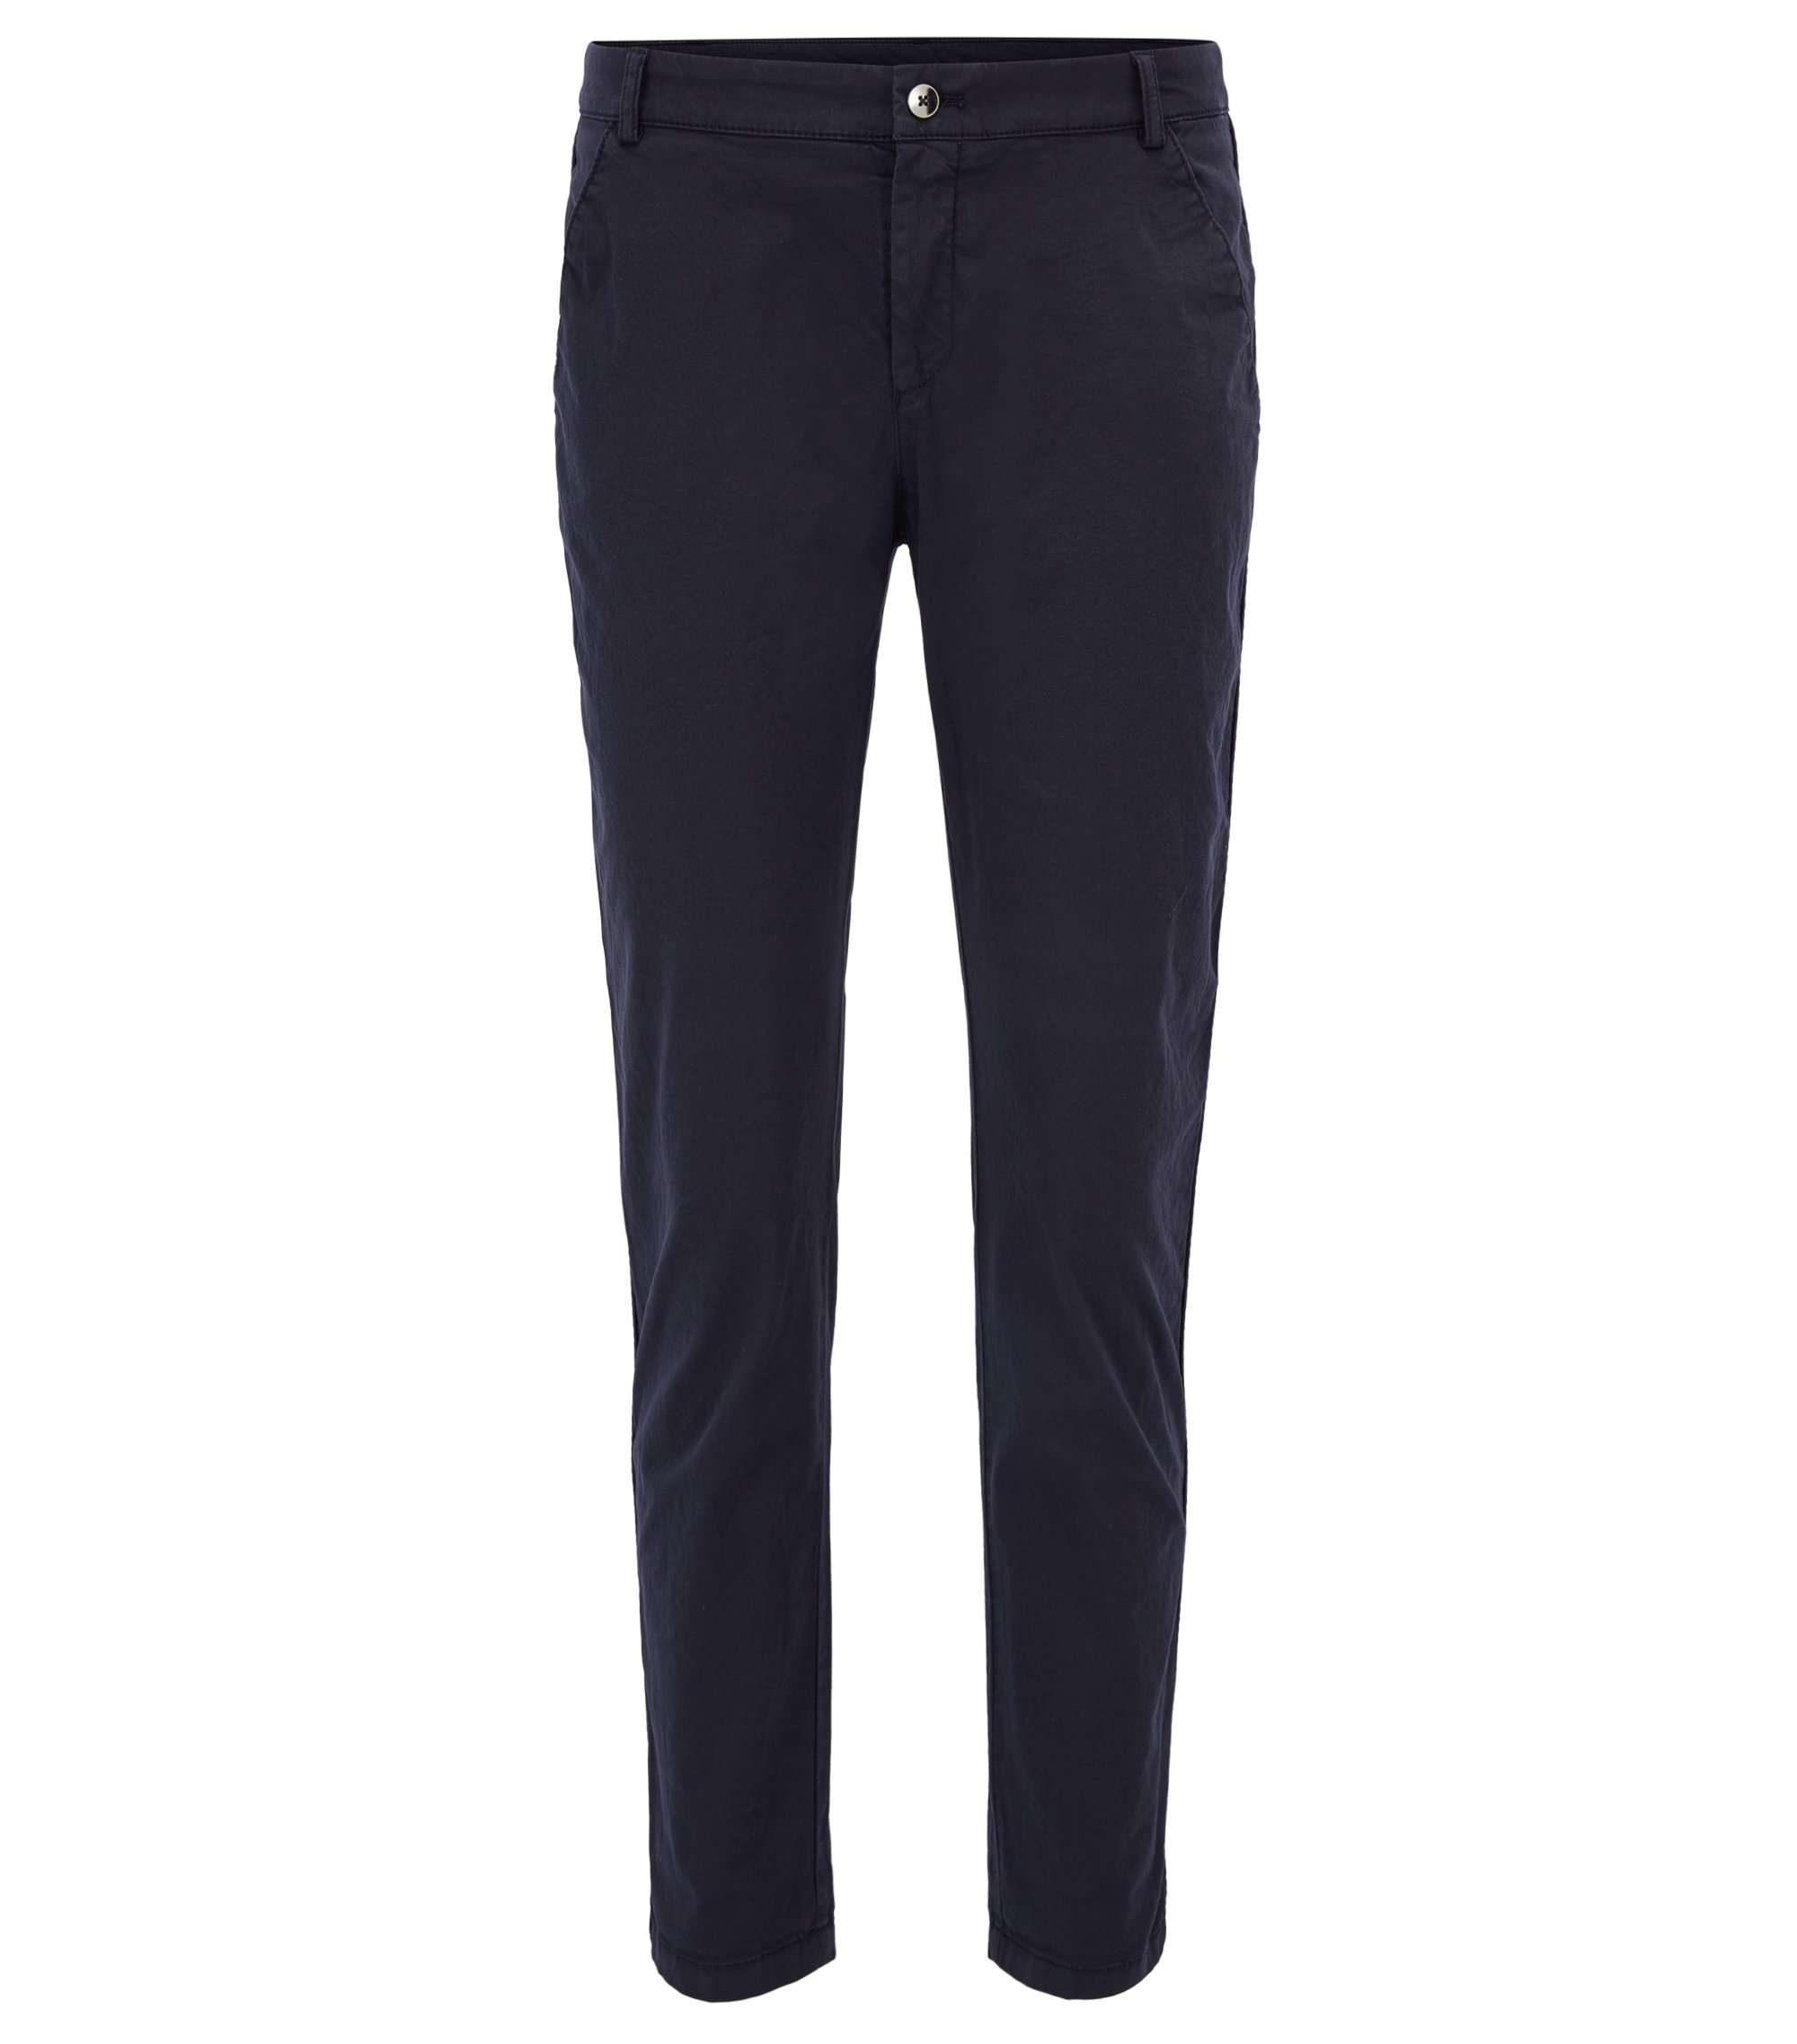 Pantalon chino Relaxed Fit en coton stretch, Bleu foncé